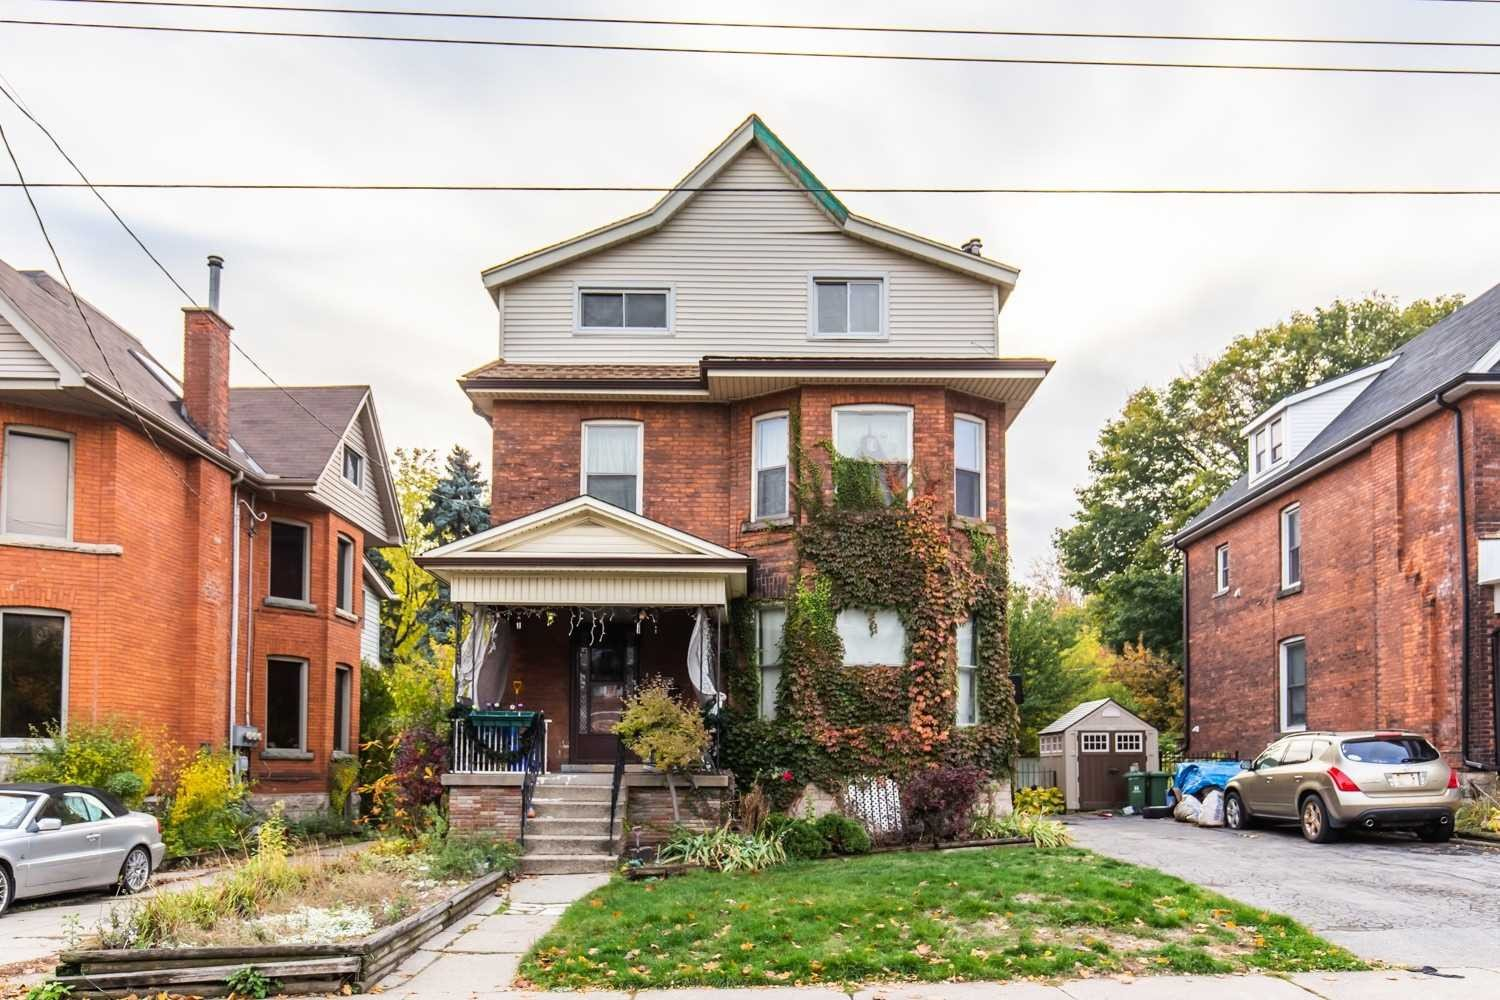 House for sale at 151 Sanford Ave S Hamilton Ontario - MLS: X4970727